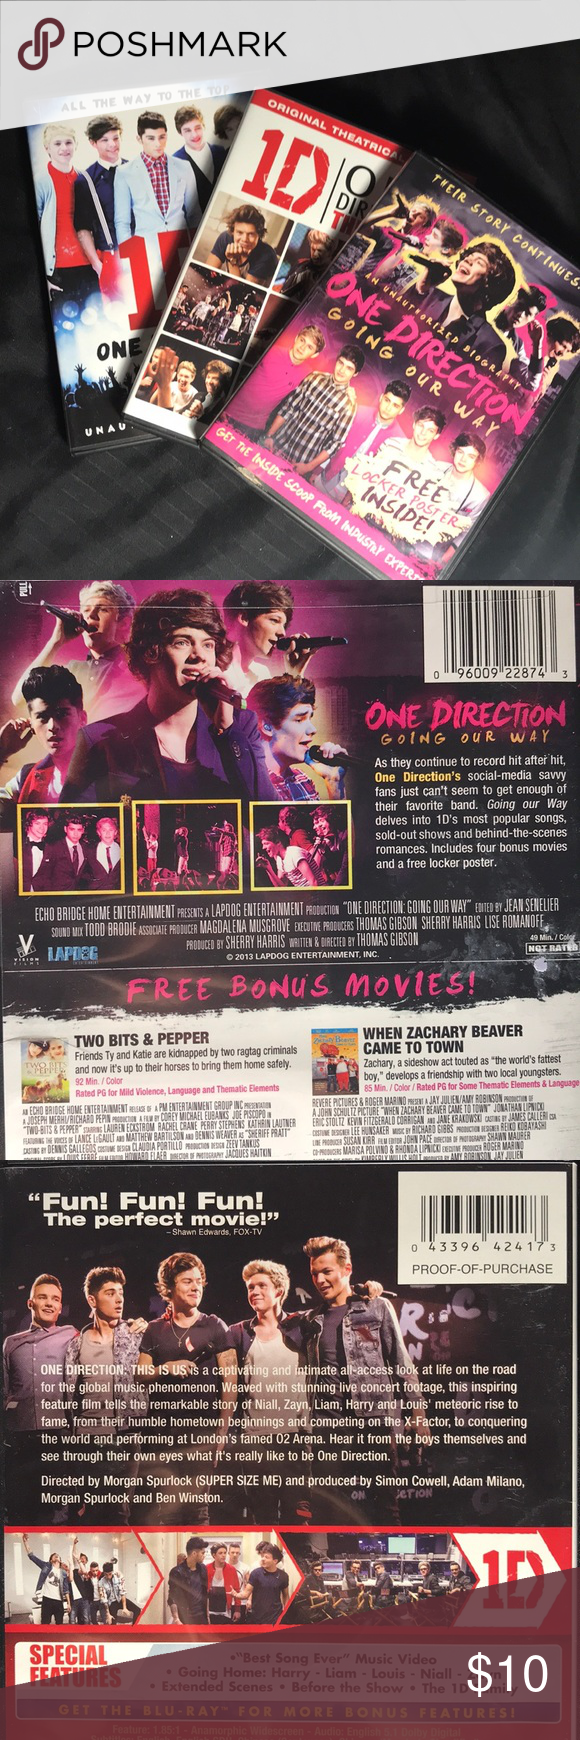 3 One Direction Film Biographies One Direction All The Way To The Top 2012 One Direction Going Our Way 2013 One Direction Gifts One Direction Biography